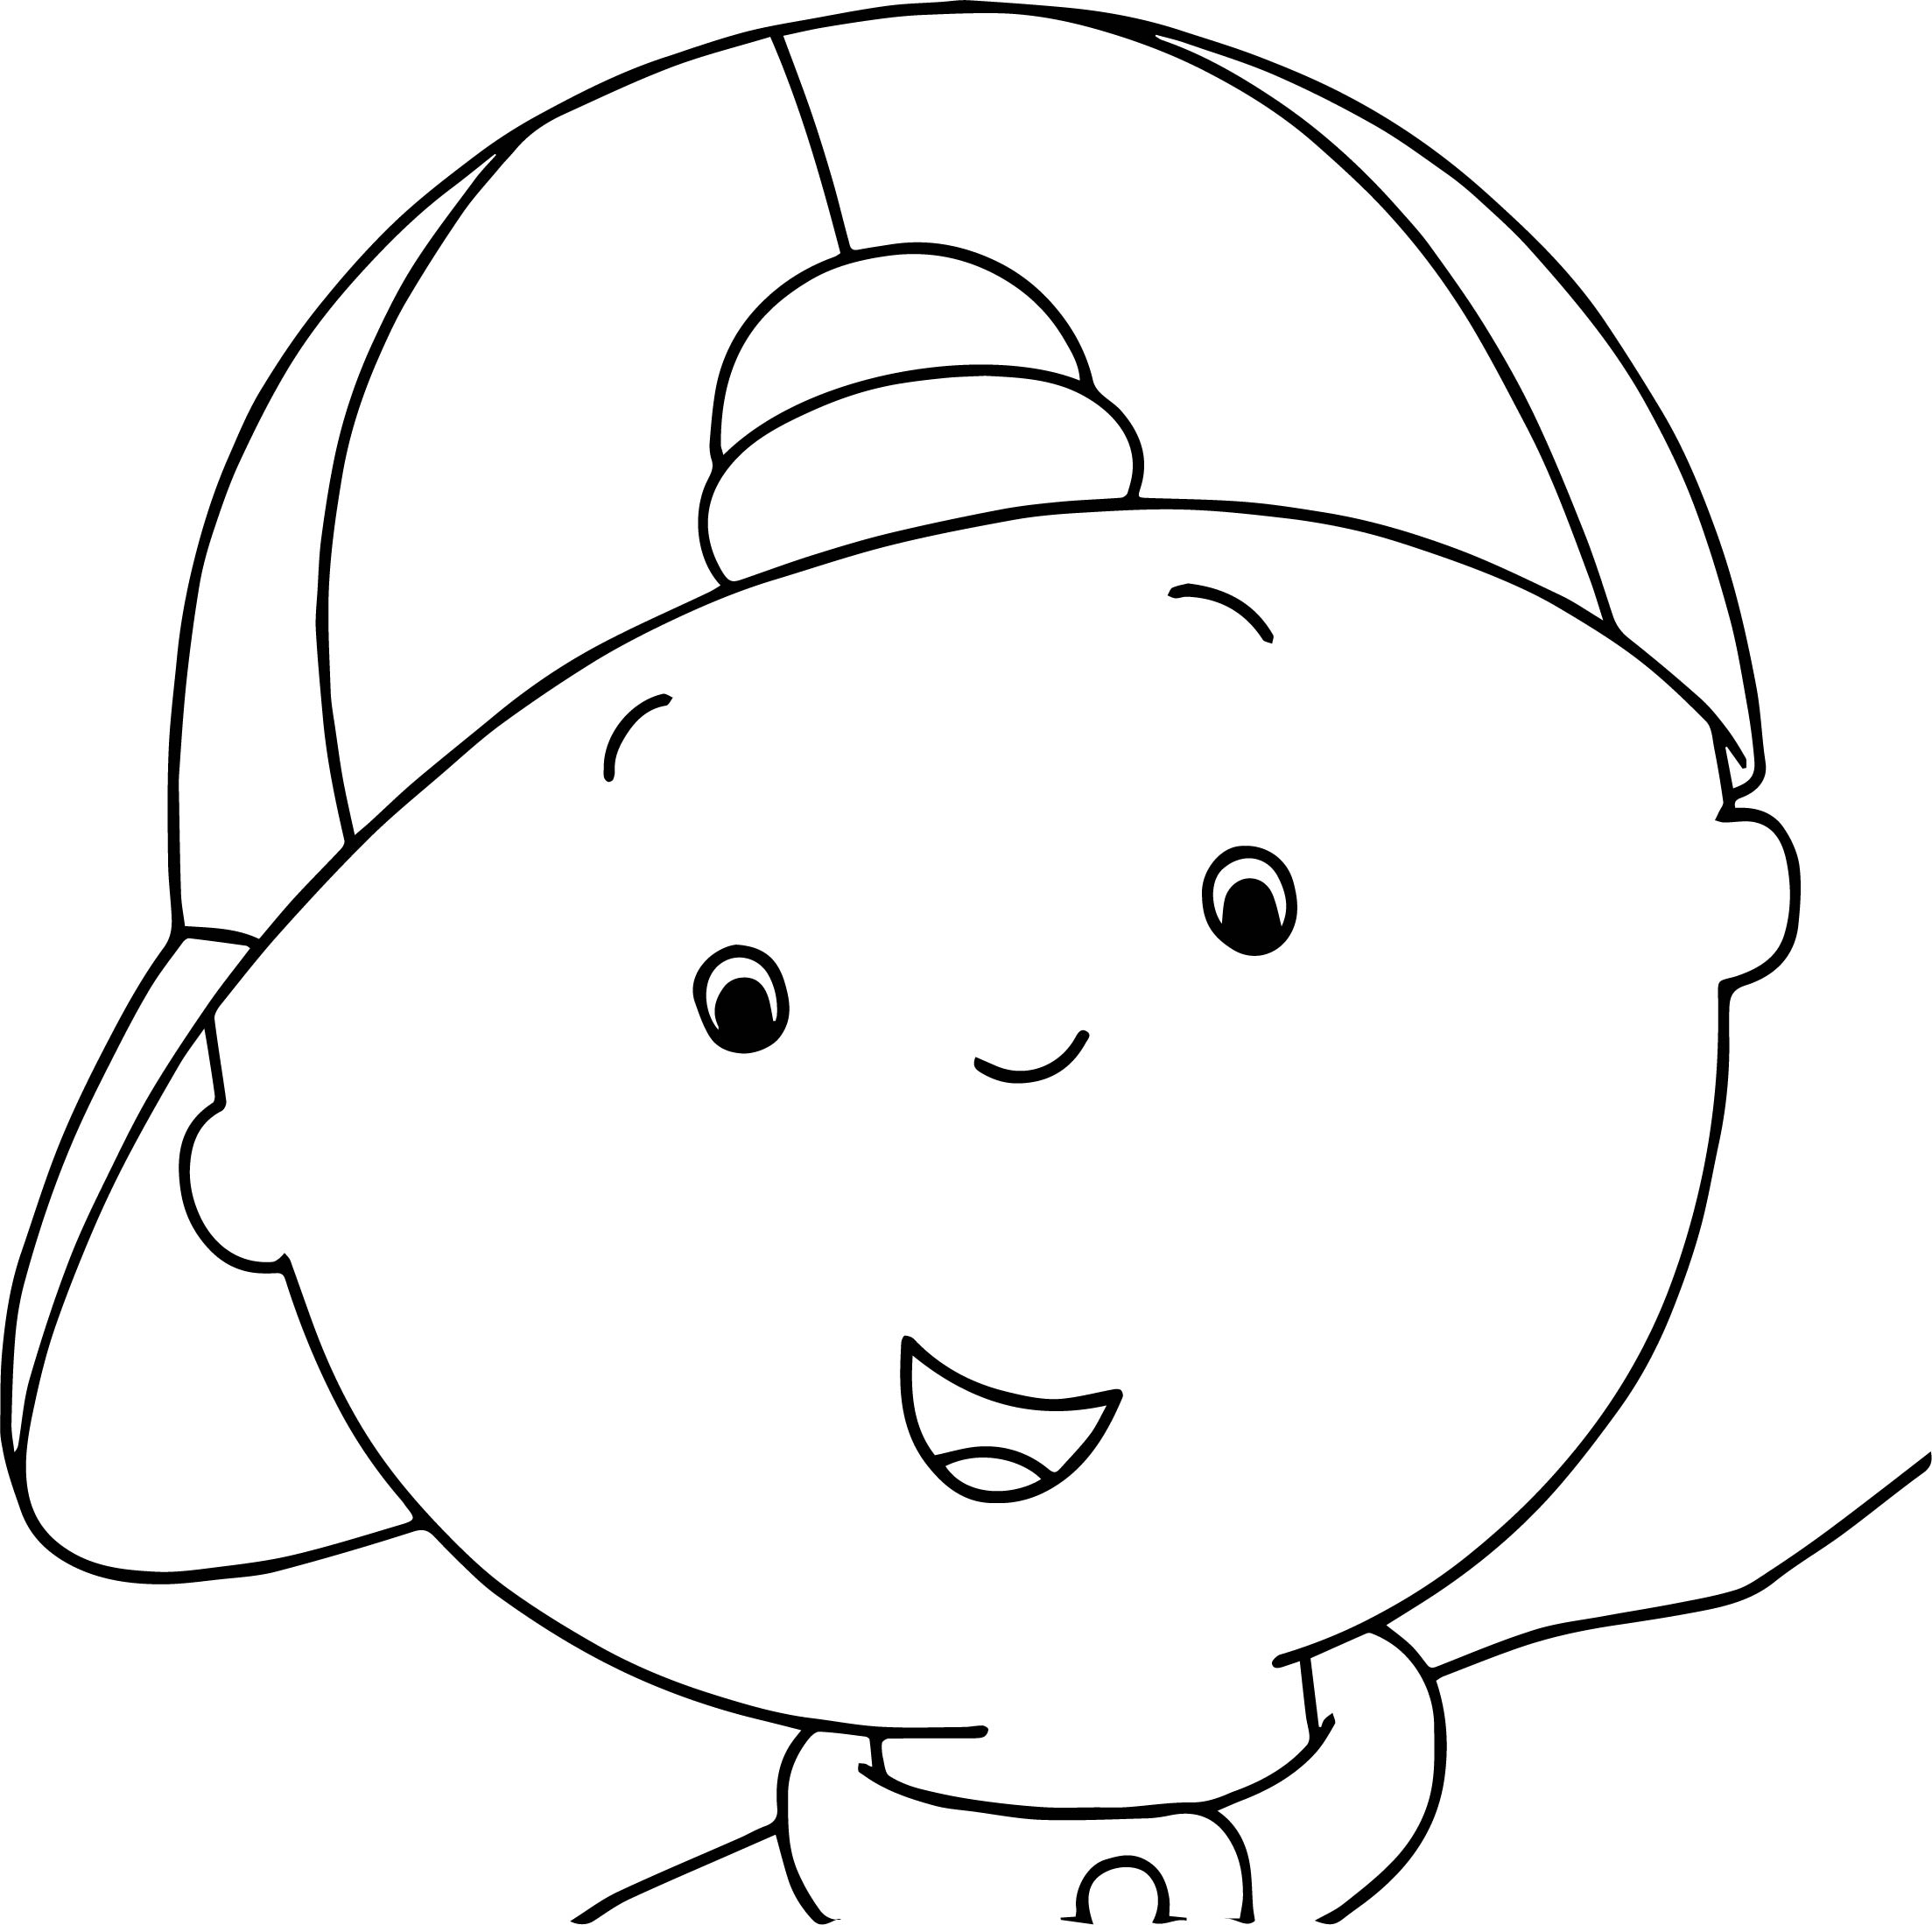 Face Wombat Colouring Pages Sketch Coloring Page